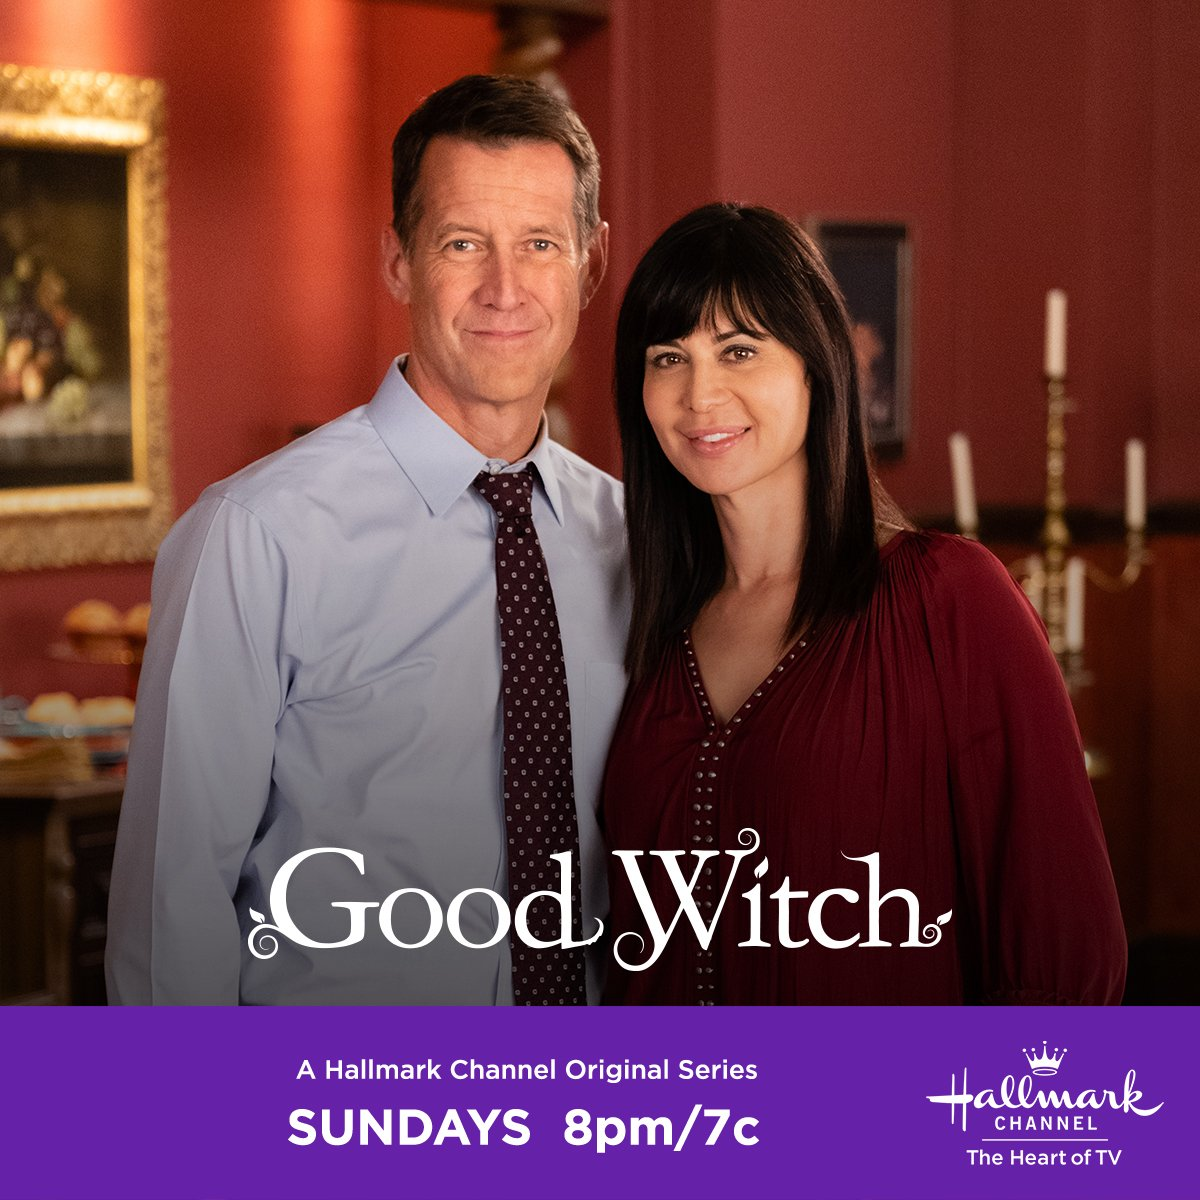 goodwitch hashtag on Twitter